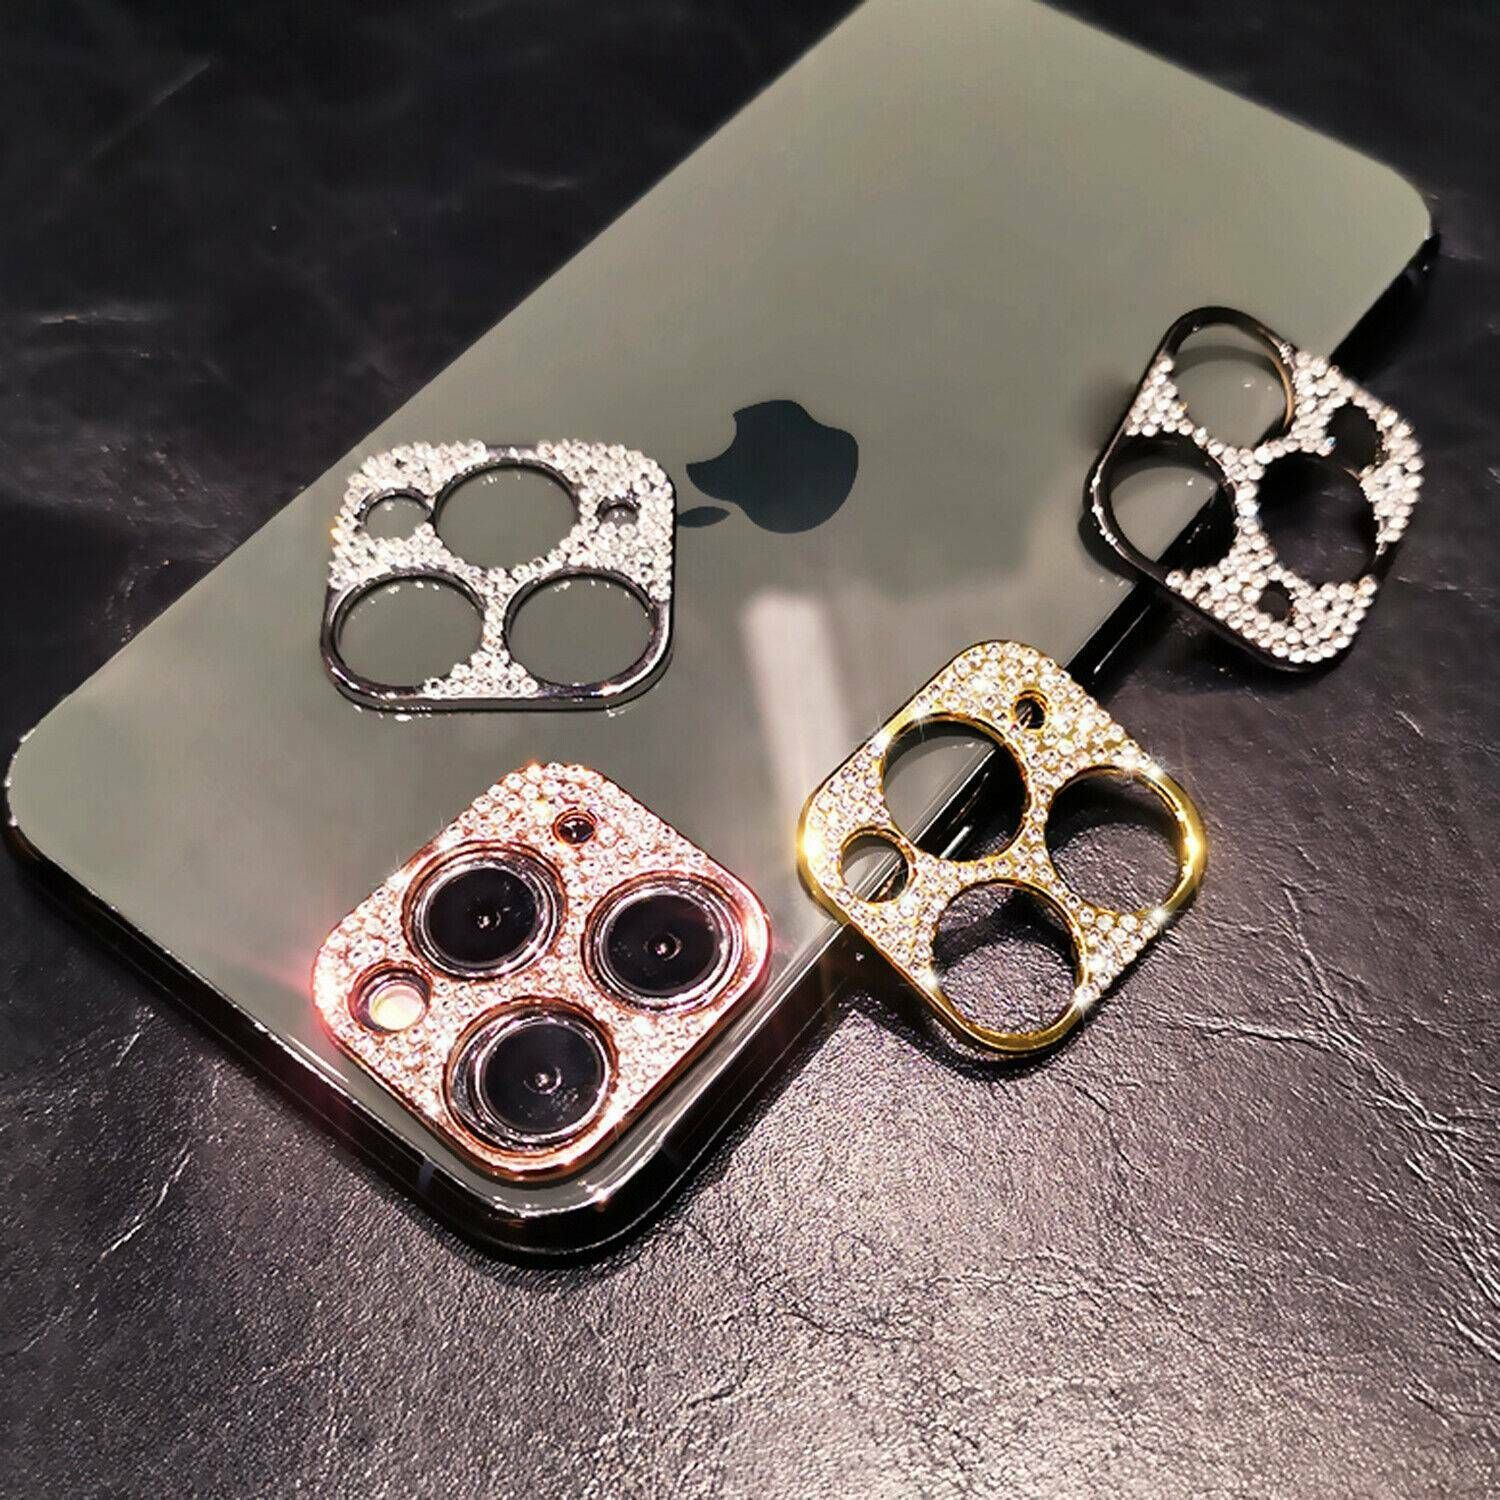 For iphone 11 pro max bling diamond camera lens protector